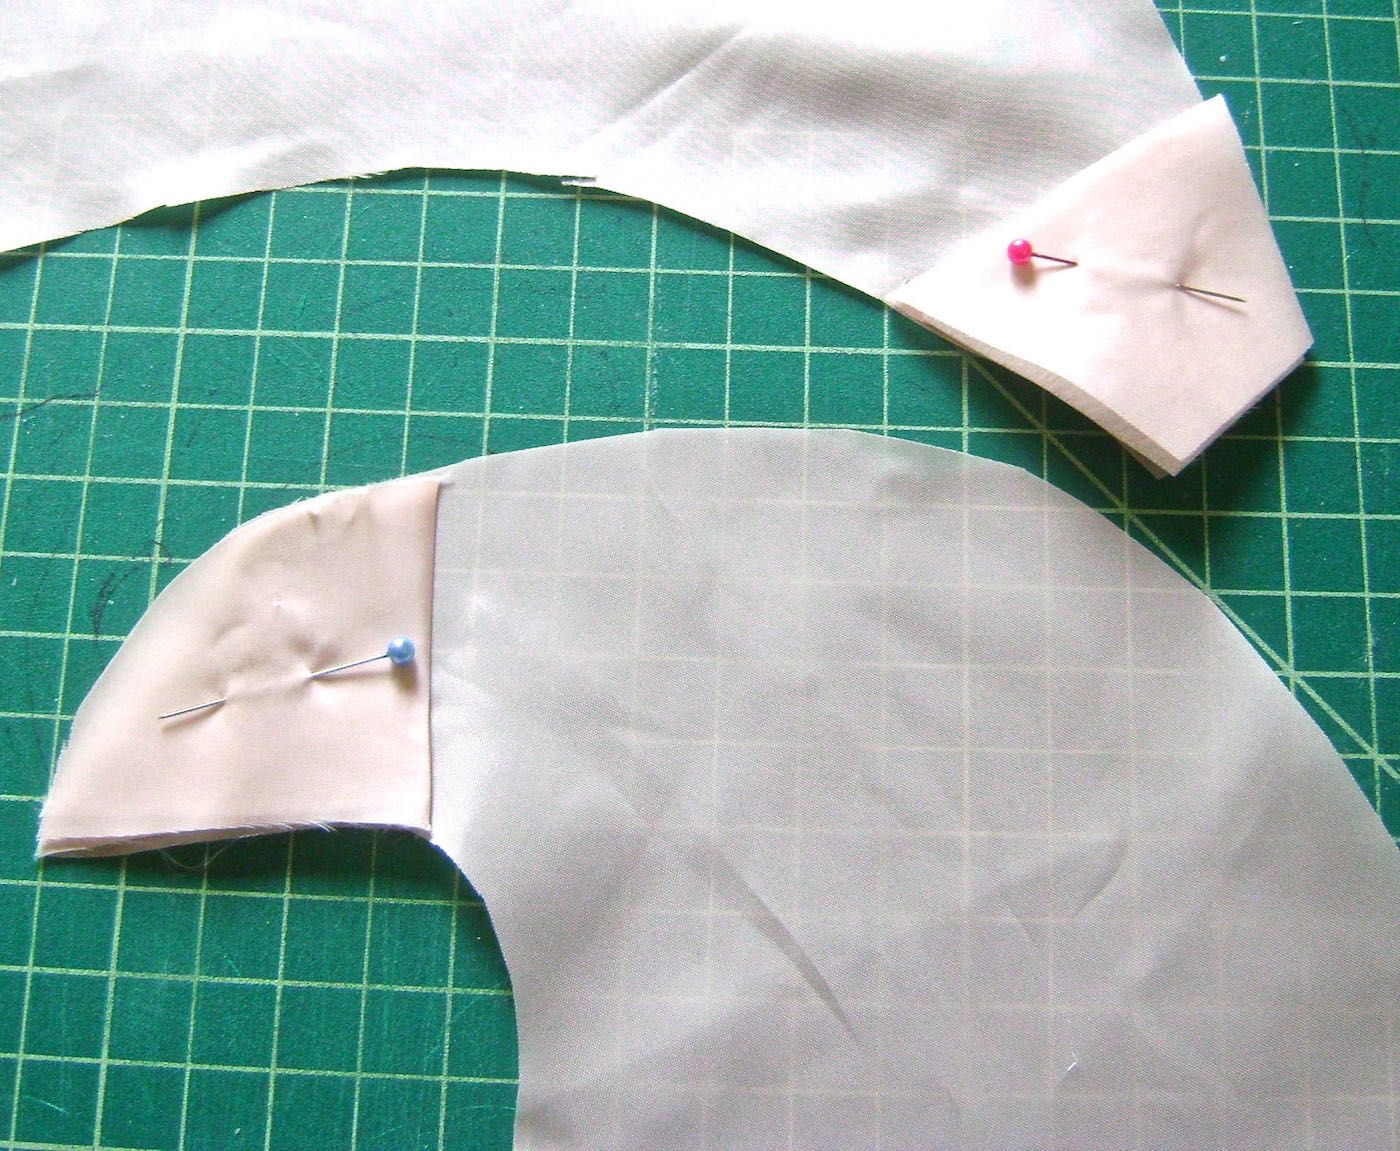 """step 3 - Trace the fabric ends onto folded pieces of scraps to create facings for the top and bottom ends. They should be 2.50"""" deep. Iron one layer of sturdy fusible interfacing inside the folded facings. This will give added strength and support especially for the top eyelet to be attached in step 6."""